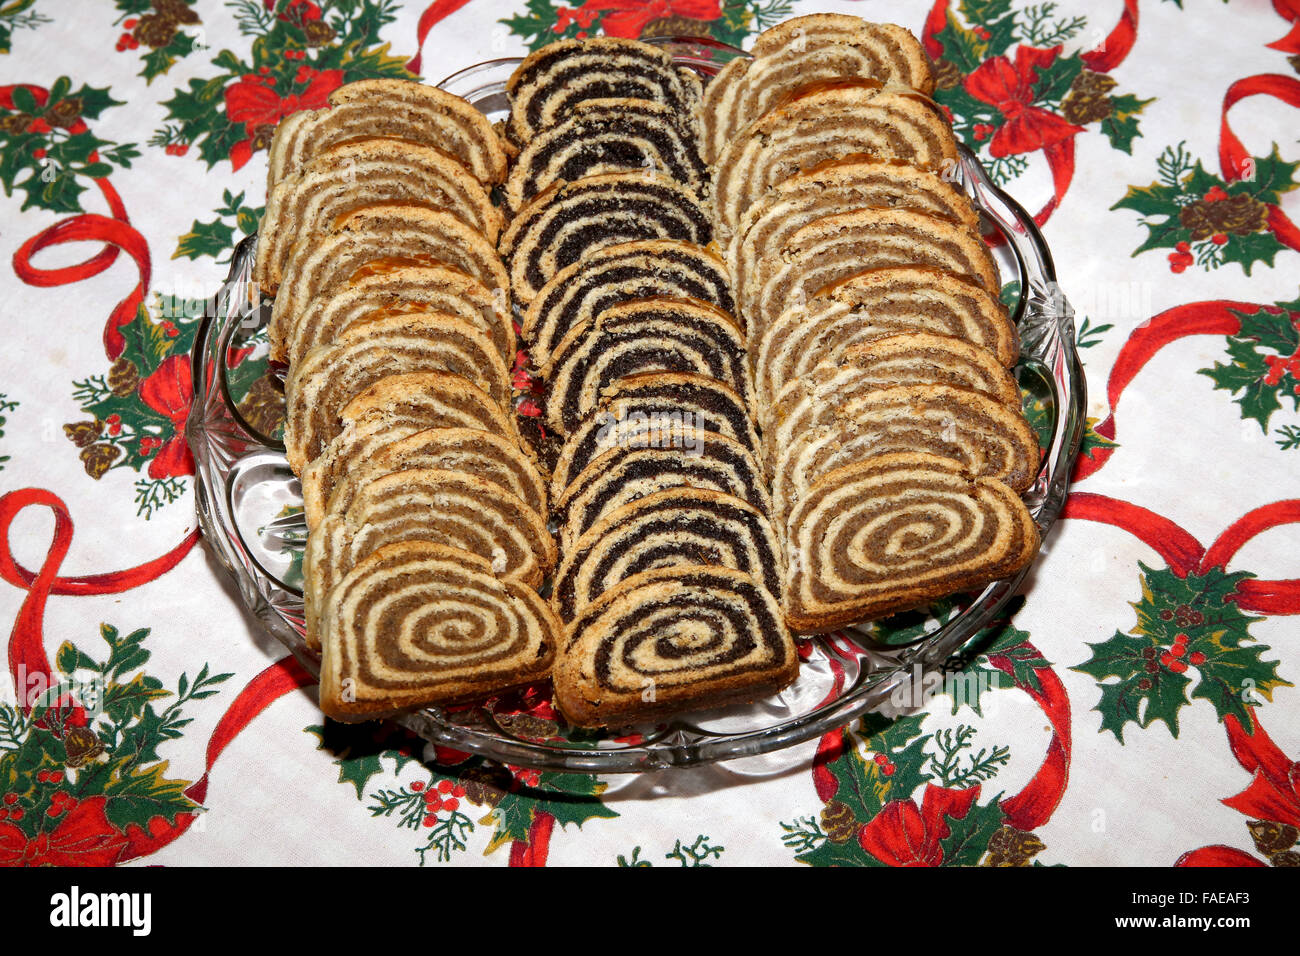 beigli is the famous traditional hungarian christmas cake stock image